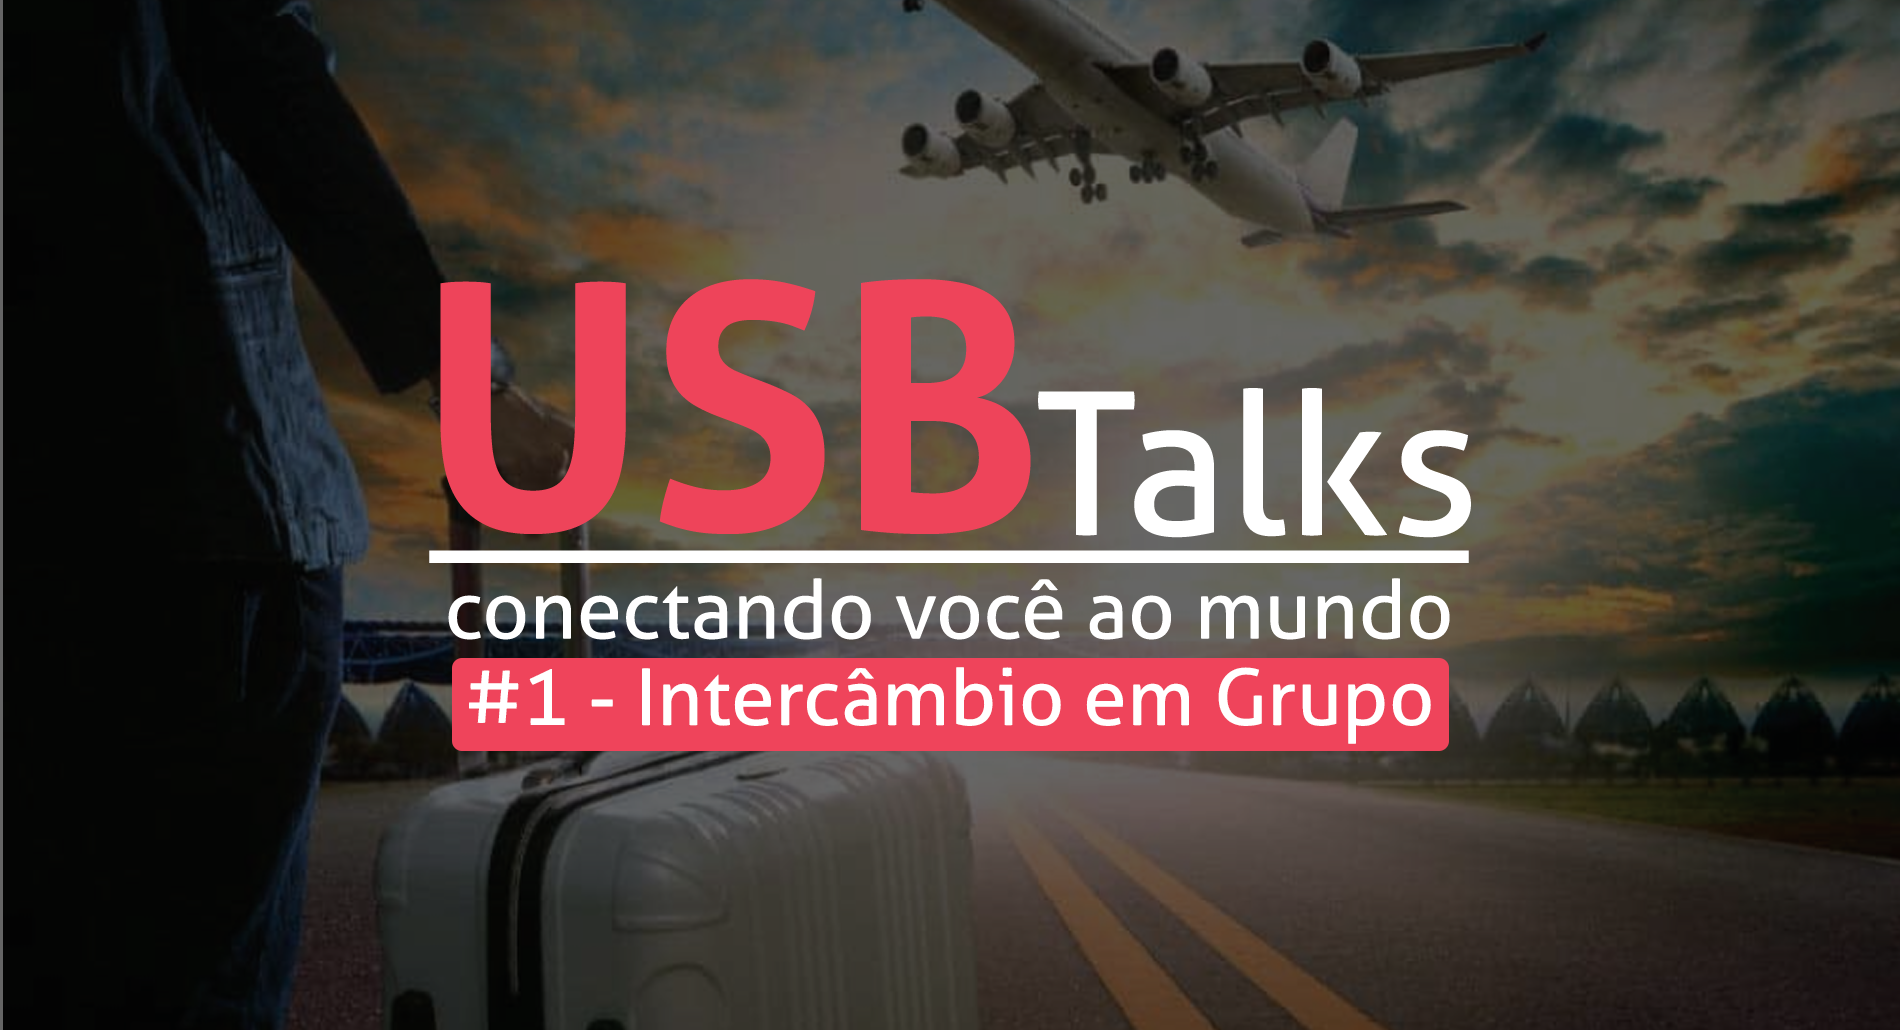 USB Talks #1 - INTERCÂMBIO EM GRUPO